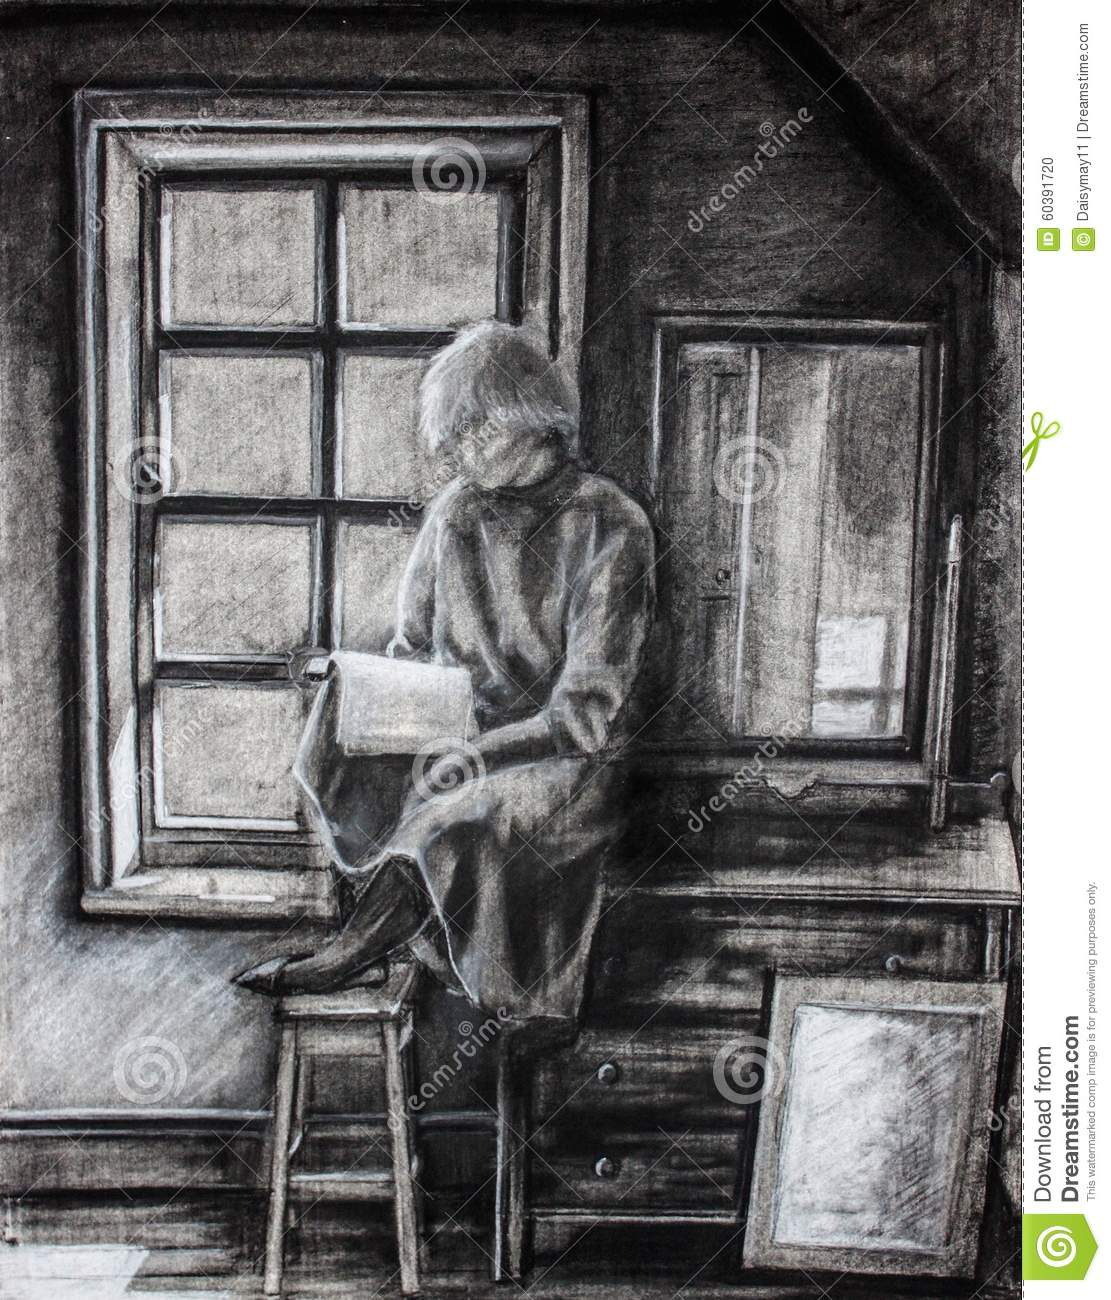 Alone girl reading book